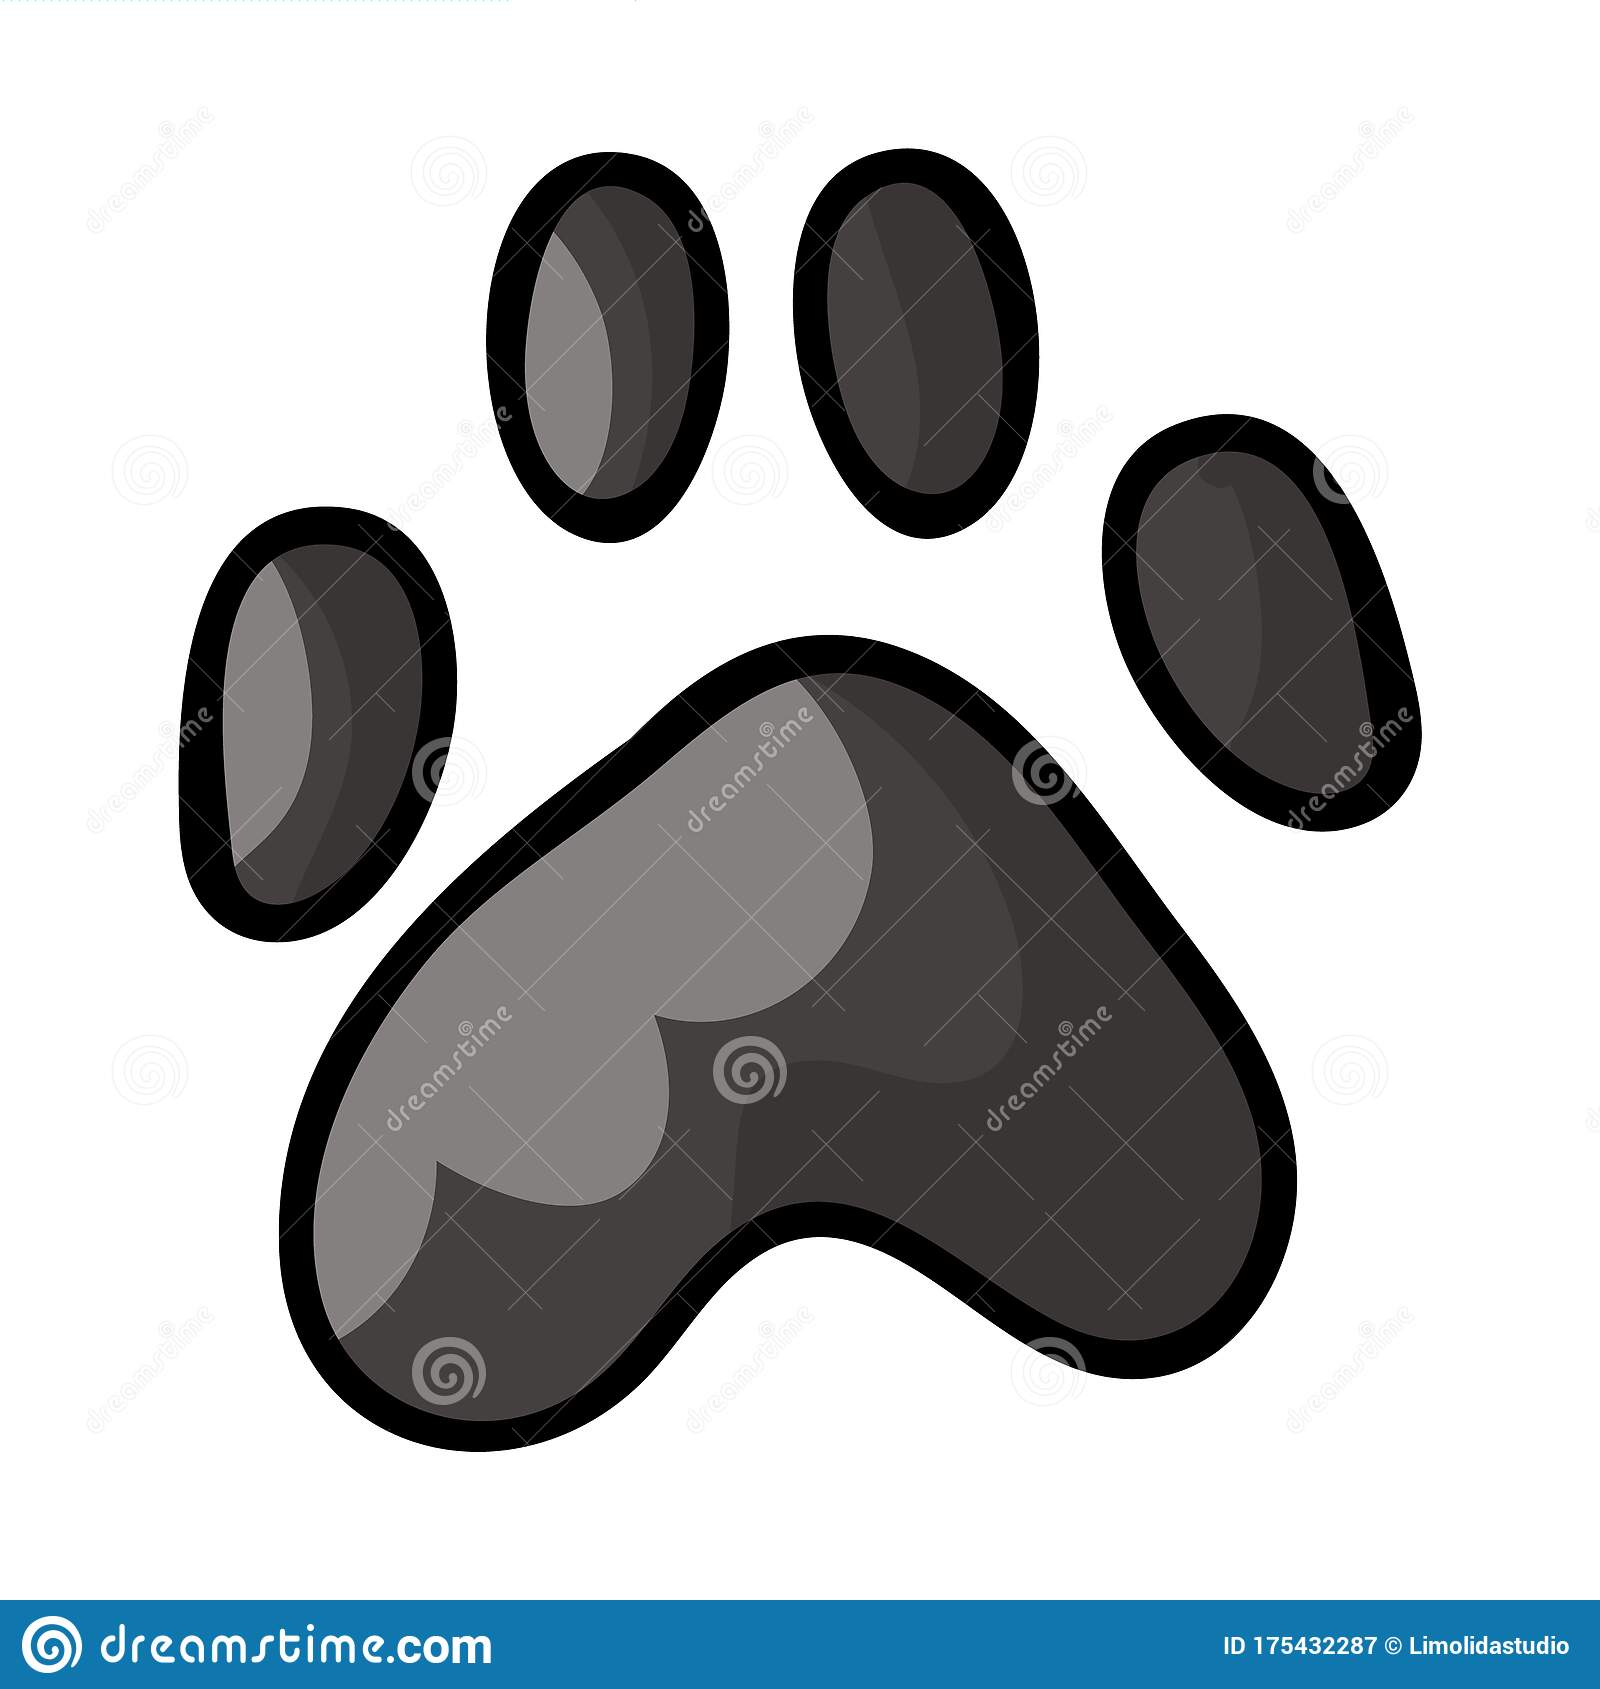 Dog paw prints dog paw print free clipart design download - WikiClipArt